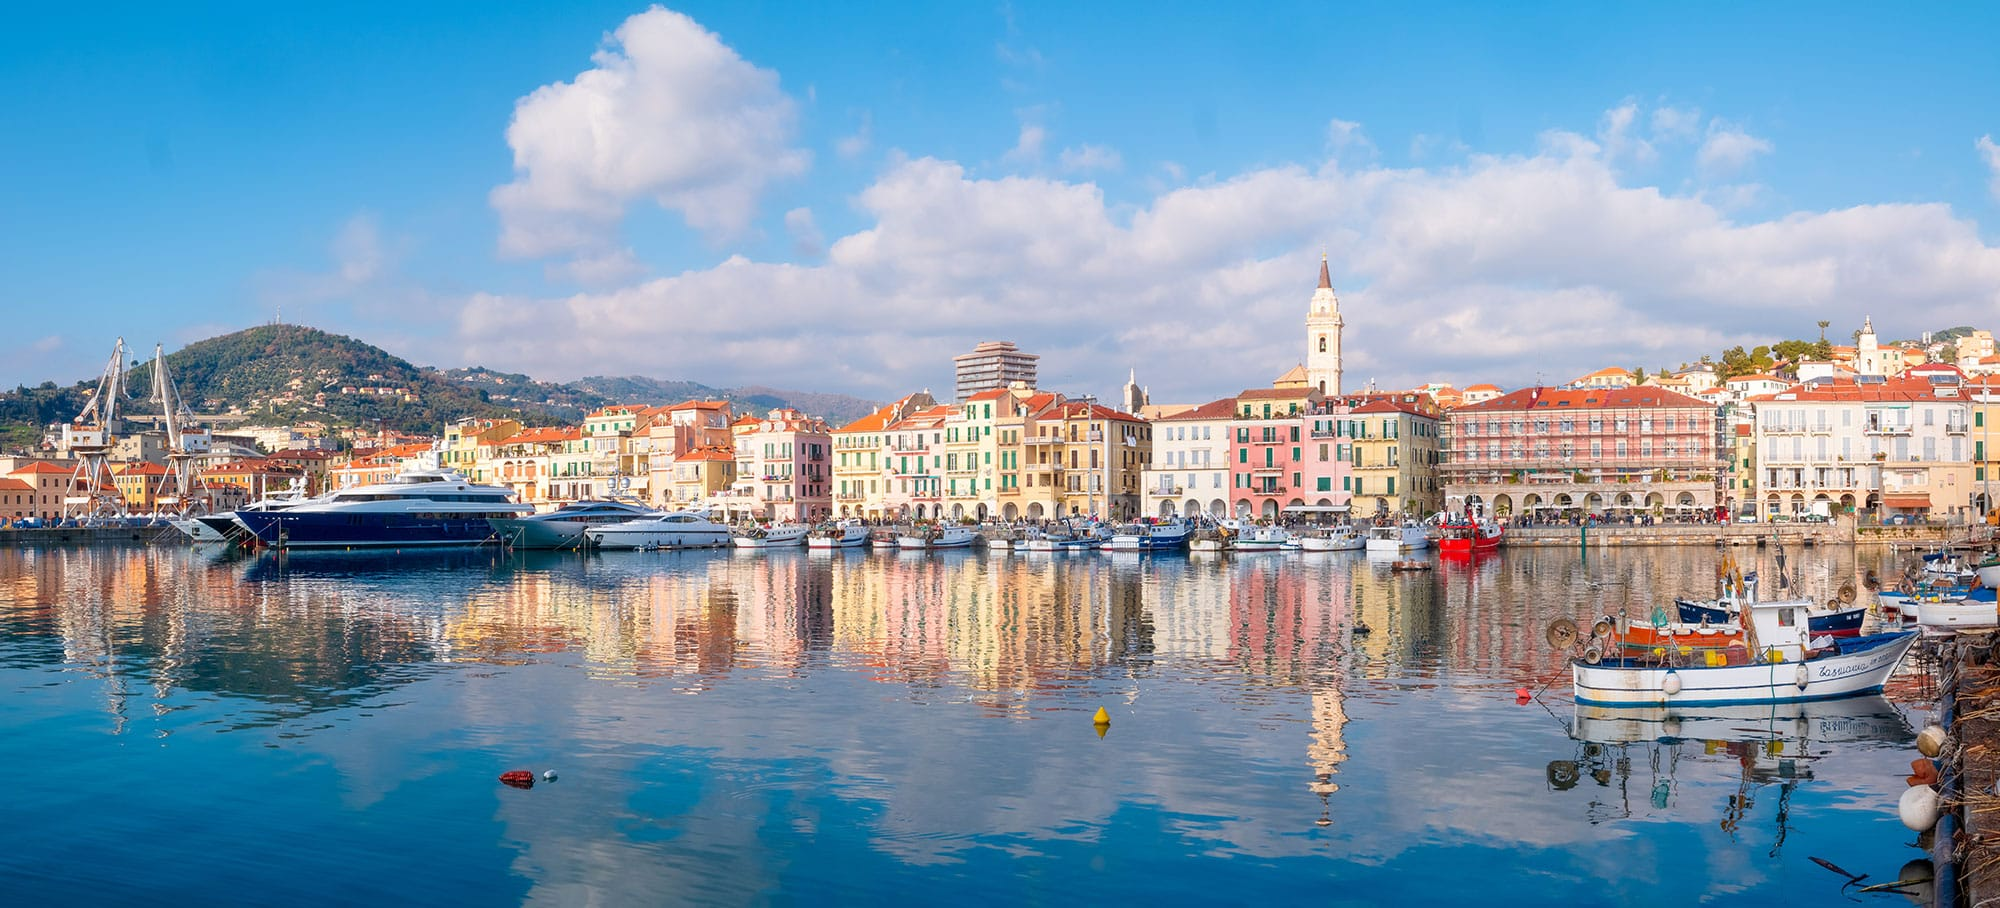 Family Hotels in Imperia